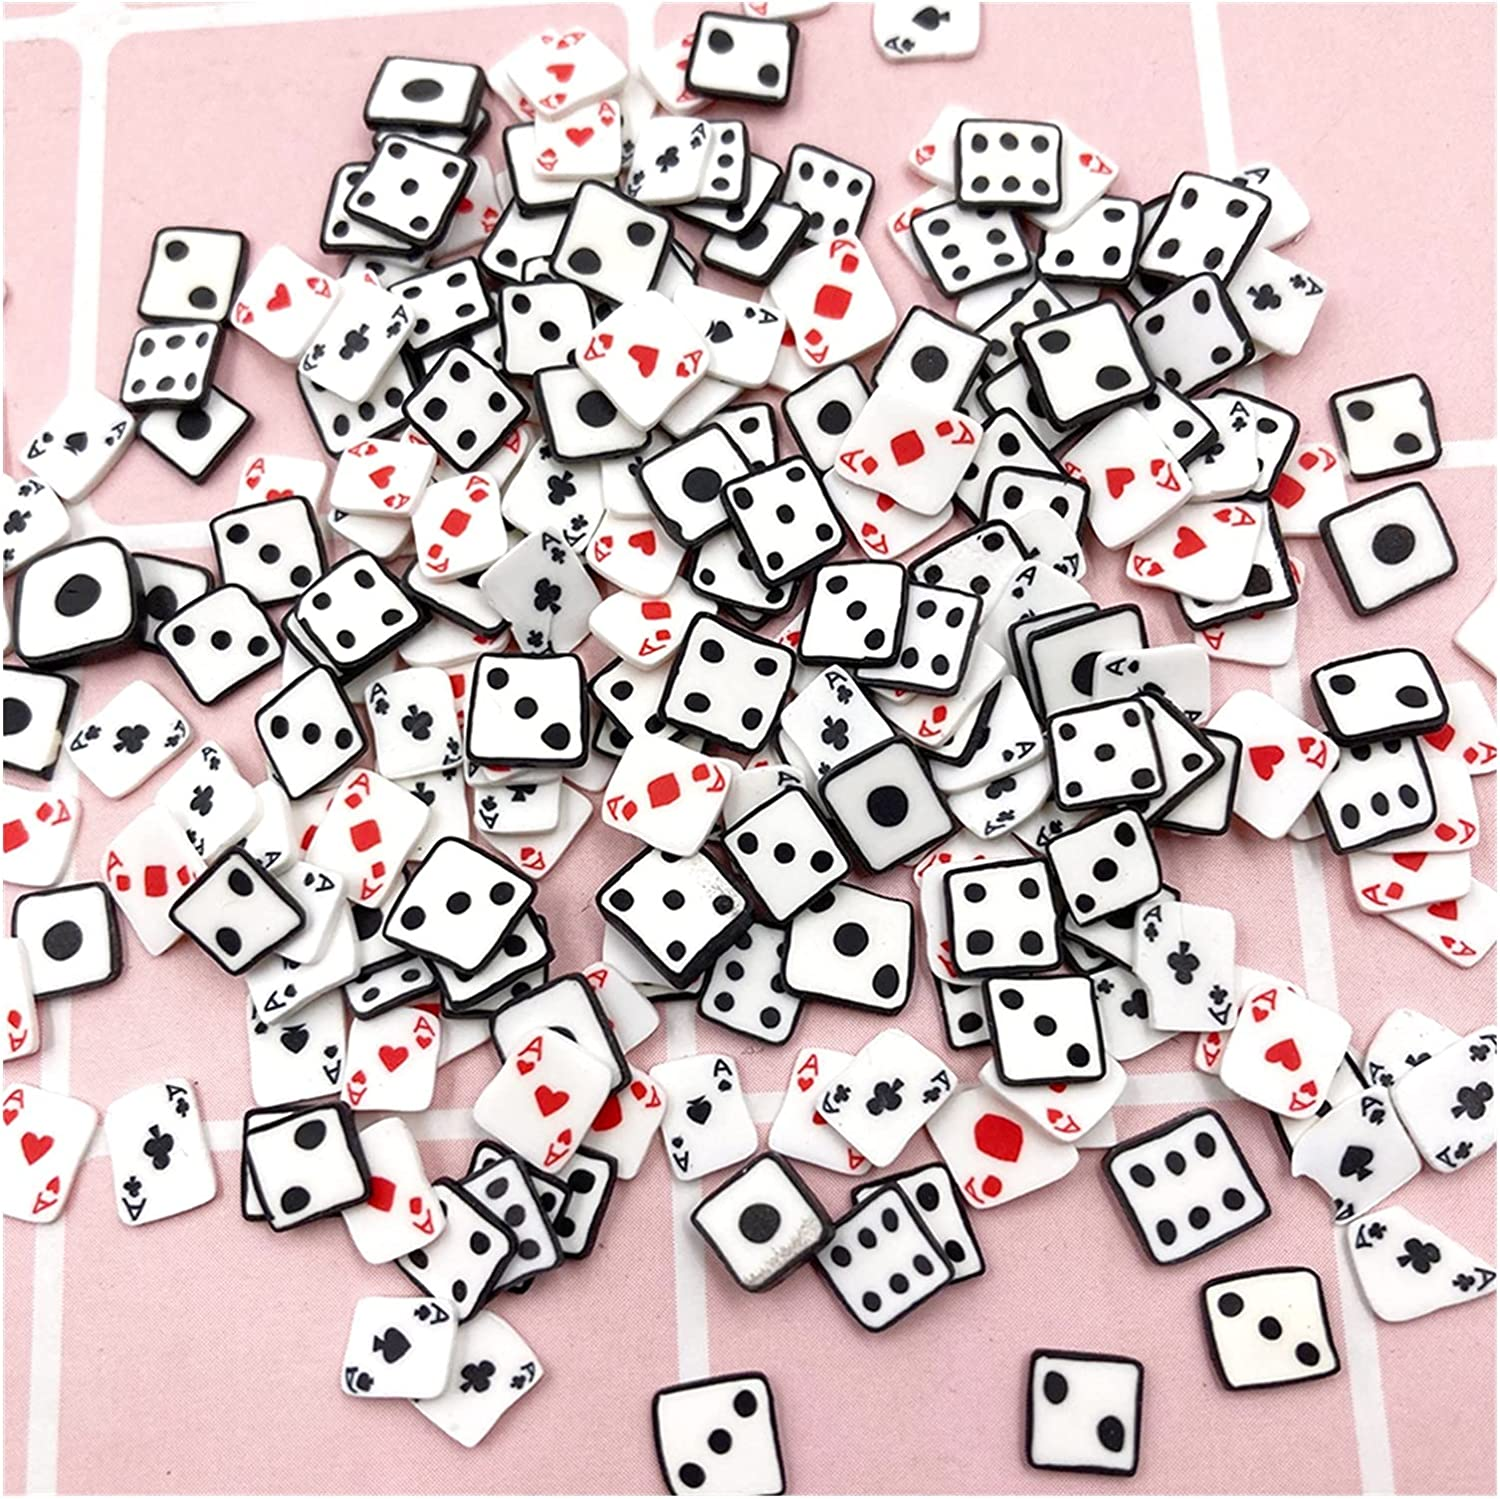 WEIMEIDA MJZS911 Max 82% OFF 50g 5mm Polymer Slice Inventory cleanup selling sale Poker Sprinkles Clay Dice